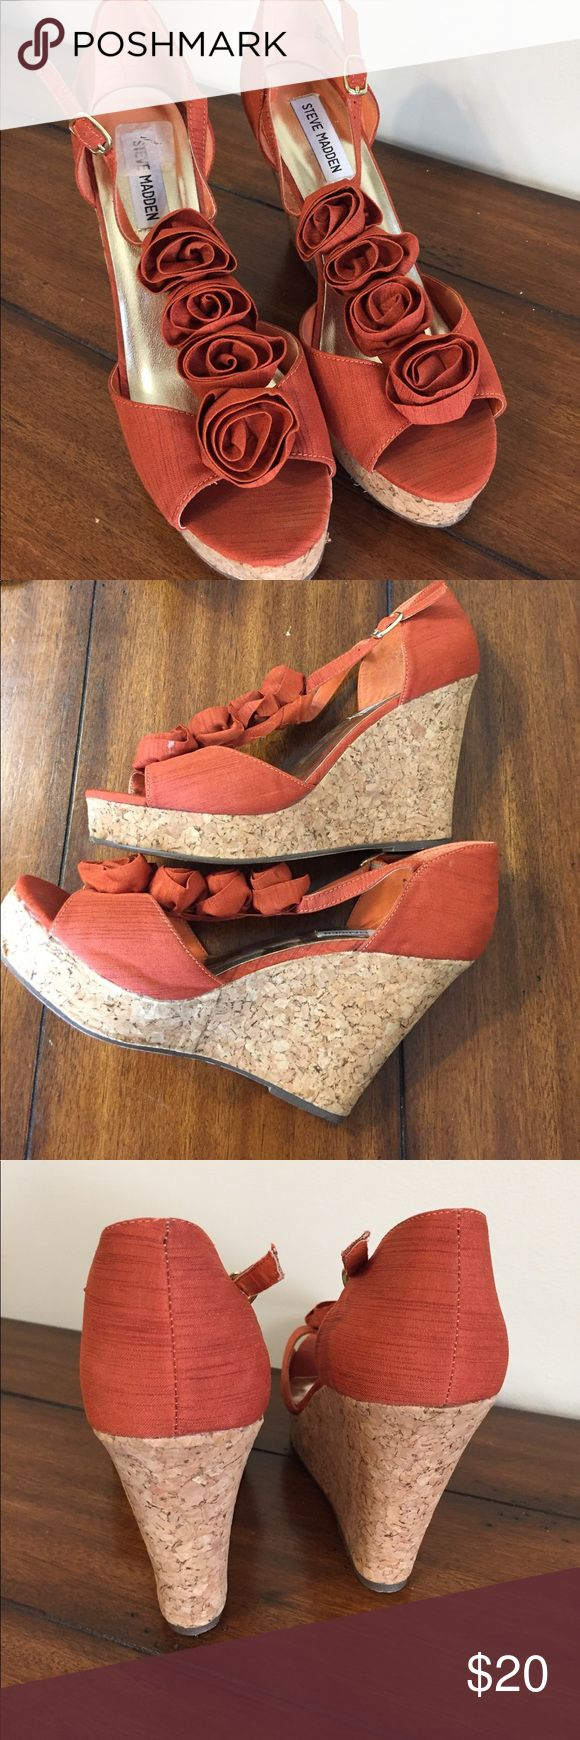 """Steve Madden Cork Wedge Sandals p-ven floral Size 8.5. Upper in excellent condition. Floral fabric design in front. 1"""" front wedge height. Smoke free home. Orange fabric. 4.25"""" heel, Steve Madden Shoes Wedges"""